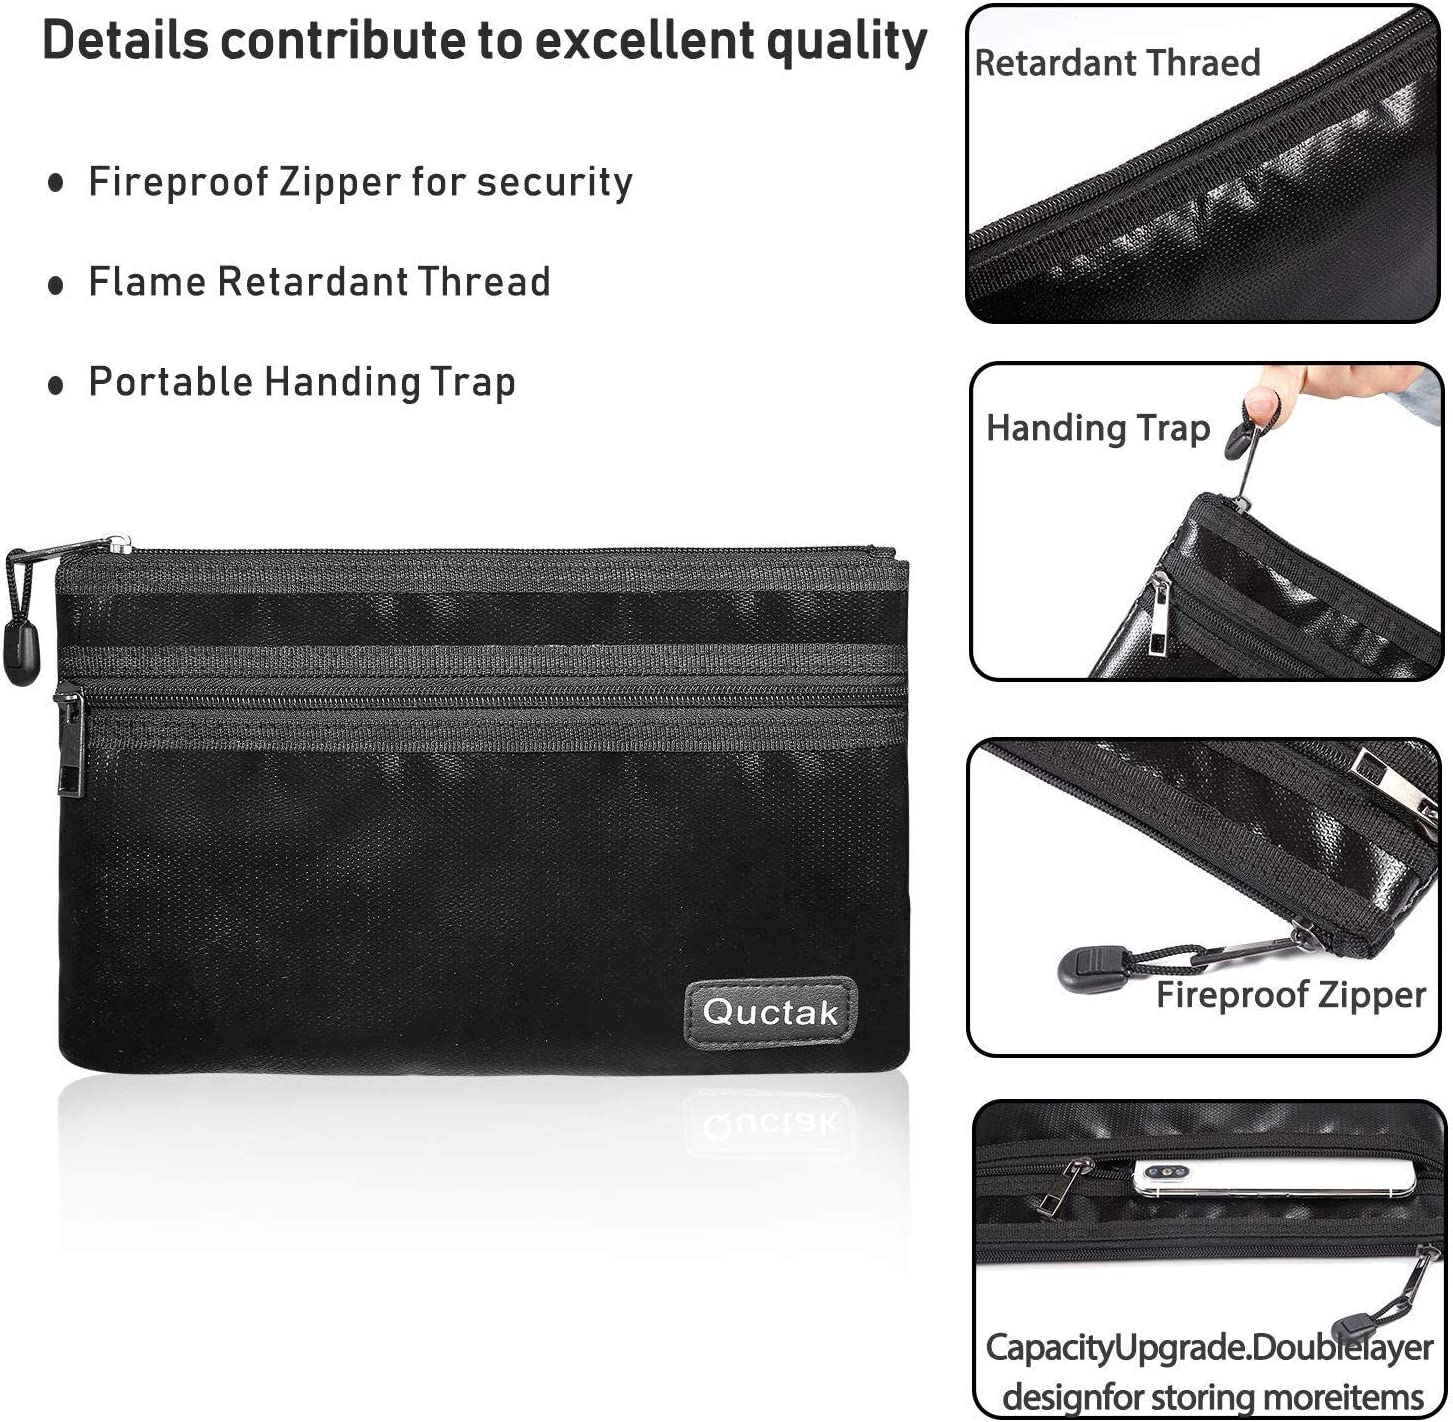 """Fireproof Money Bag Two Pockets Two Zippers,Quctak Fireproof Safe Bag 10.6""""x6.7"""" Waterproof and Fireproof Cash Bag Money Safe Pouch Storage for A5 Bank Deposit,Passport,Jewelry (1 Layer Protection): Office Products"""